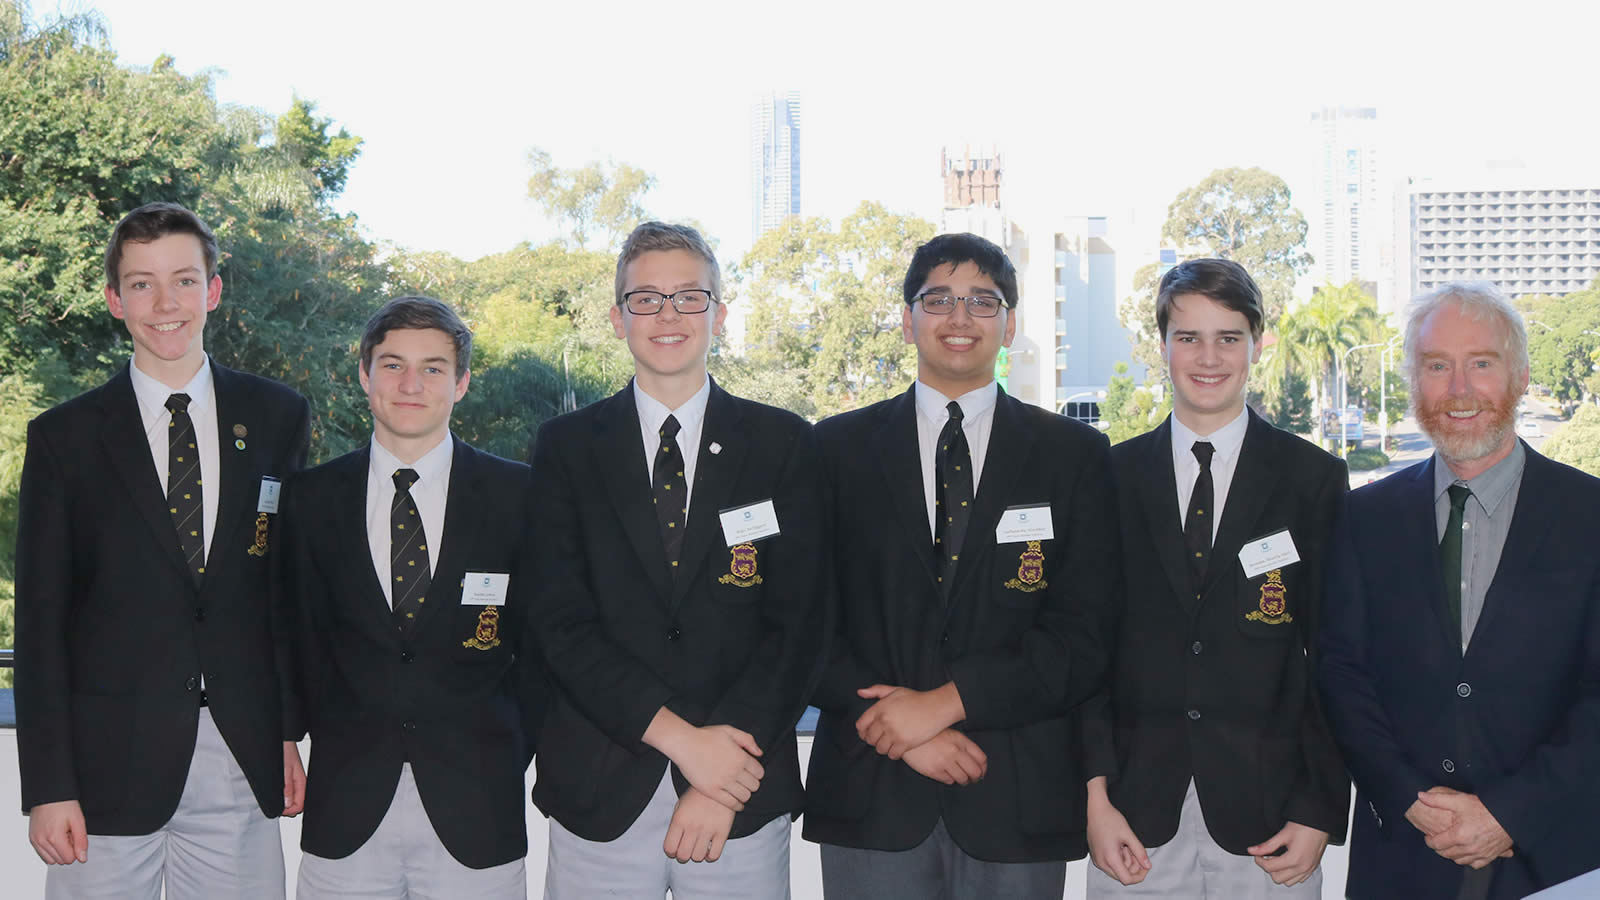 L–R Year 10 students, Malcolm Ward, Raiden Lemon, Miles McTaggert, Sudhaunshu Hardikar and Brendan Heatley-Hart with Head of Faculty Mr Peter Crofts.